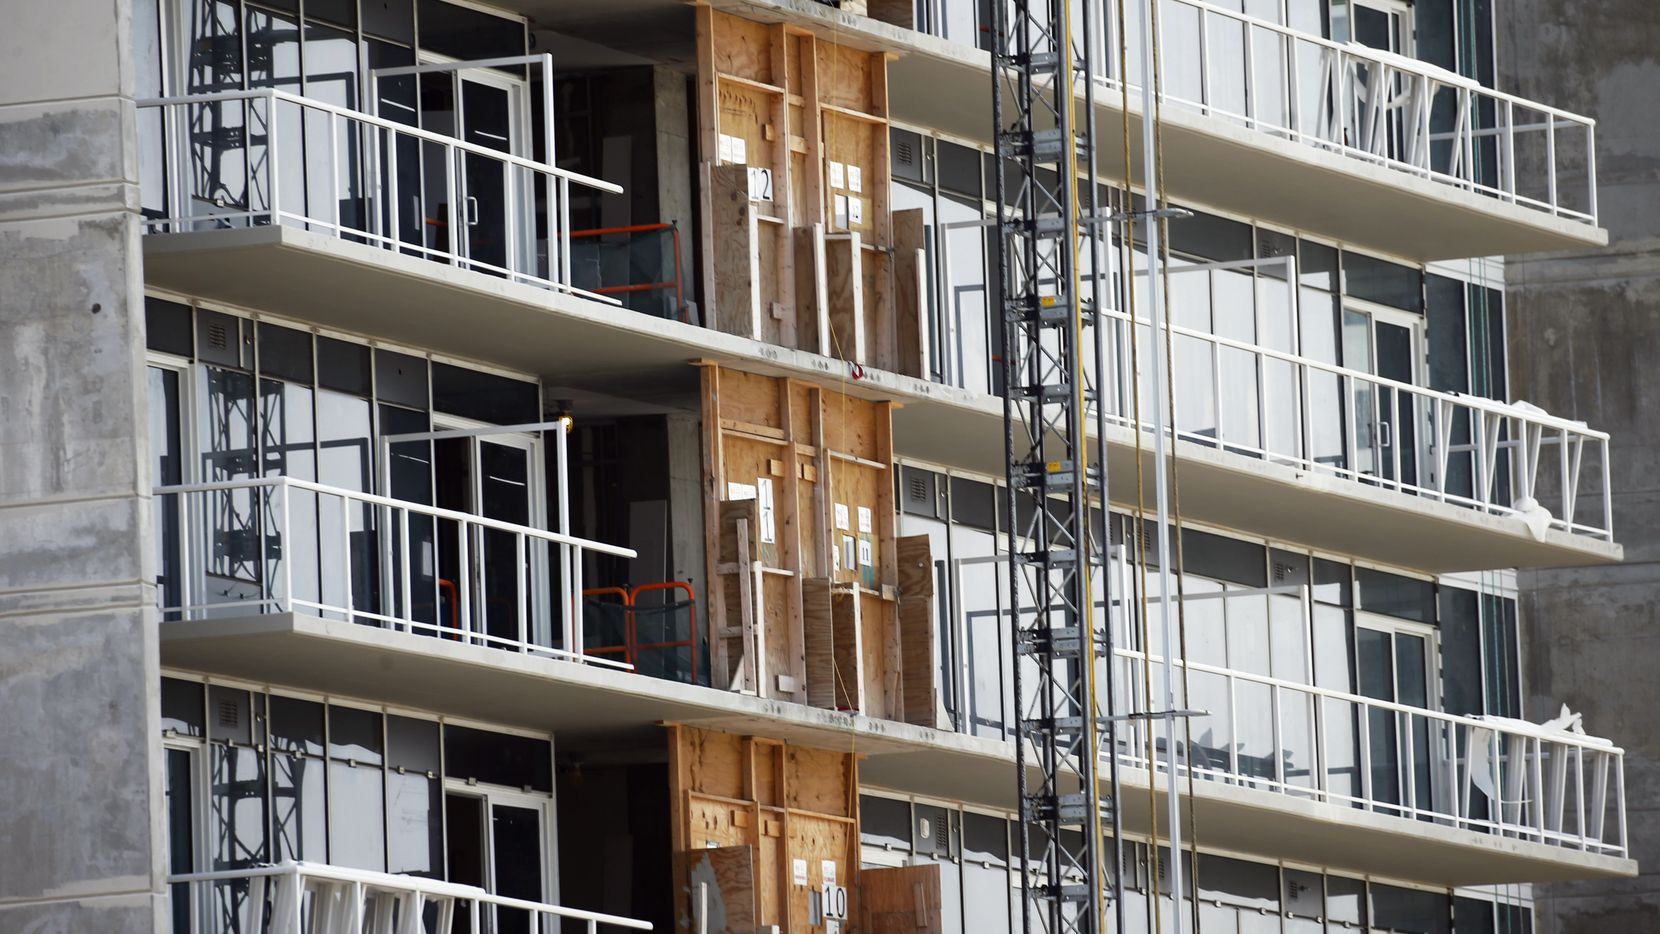 More than half of U.S. construction firms say they expect it will take six months or longer for the industry to recover.